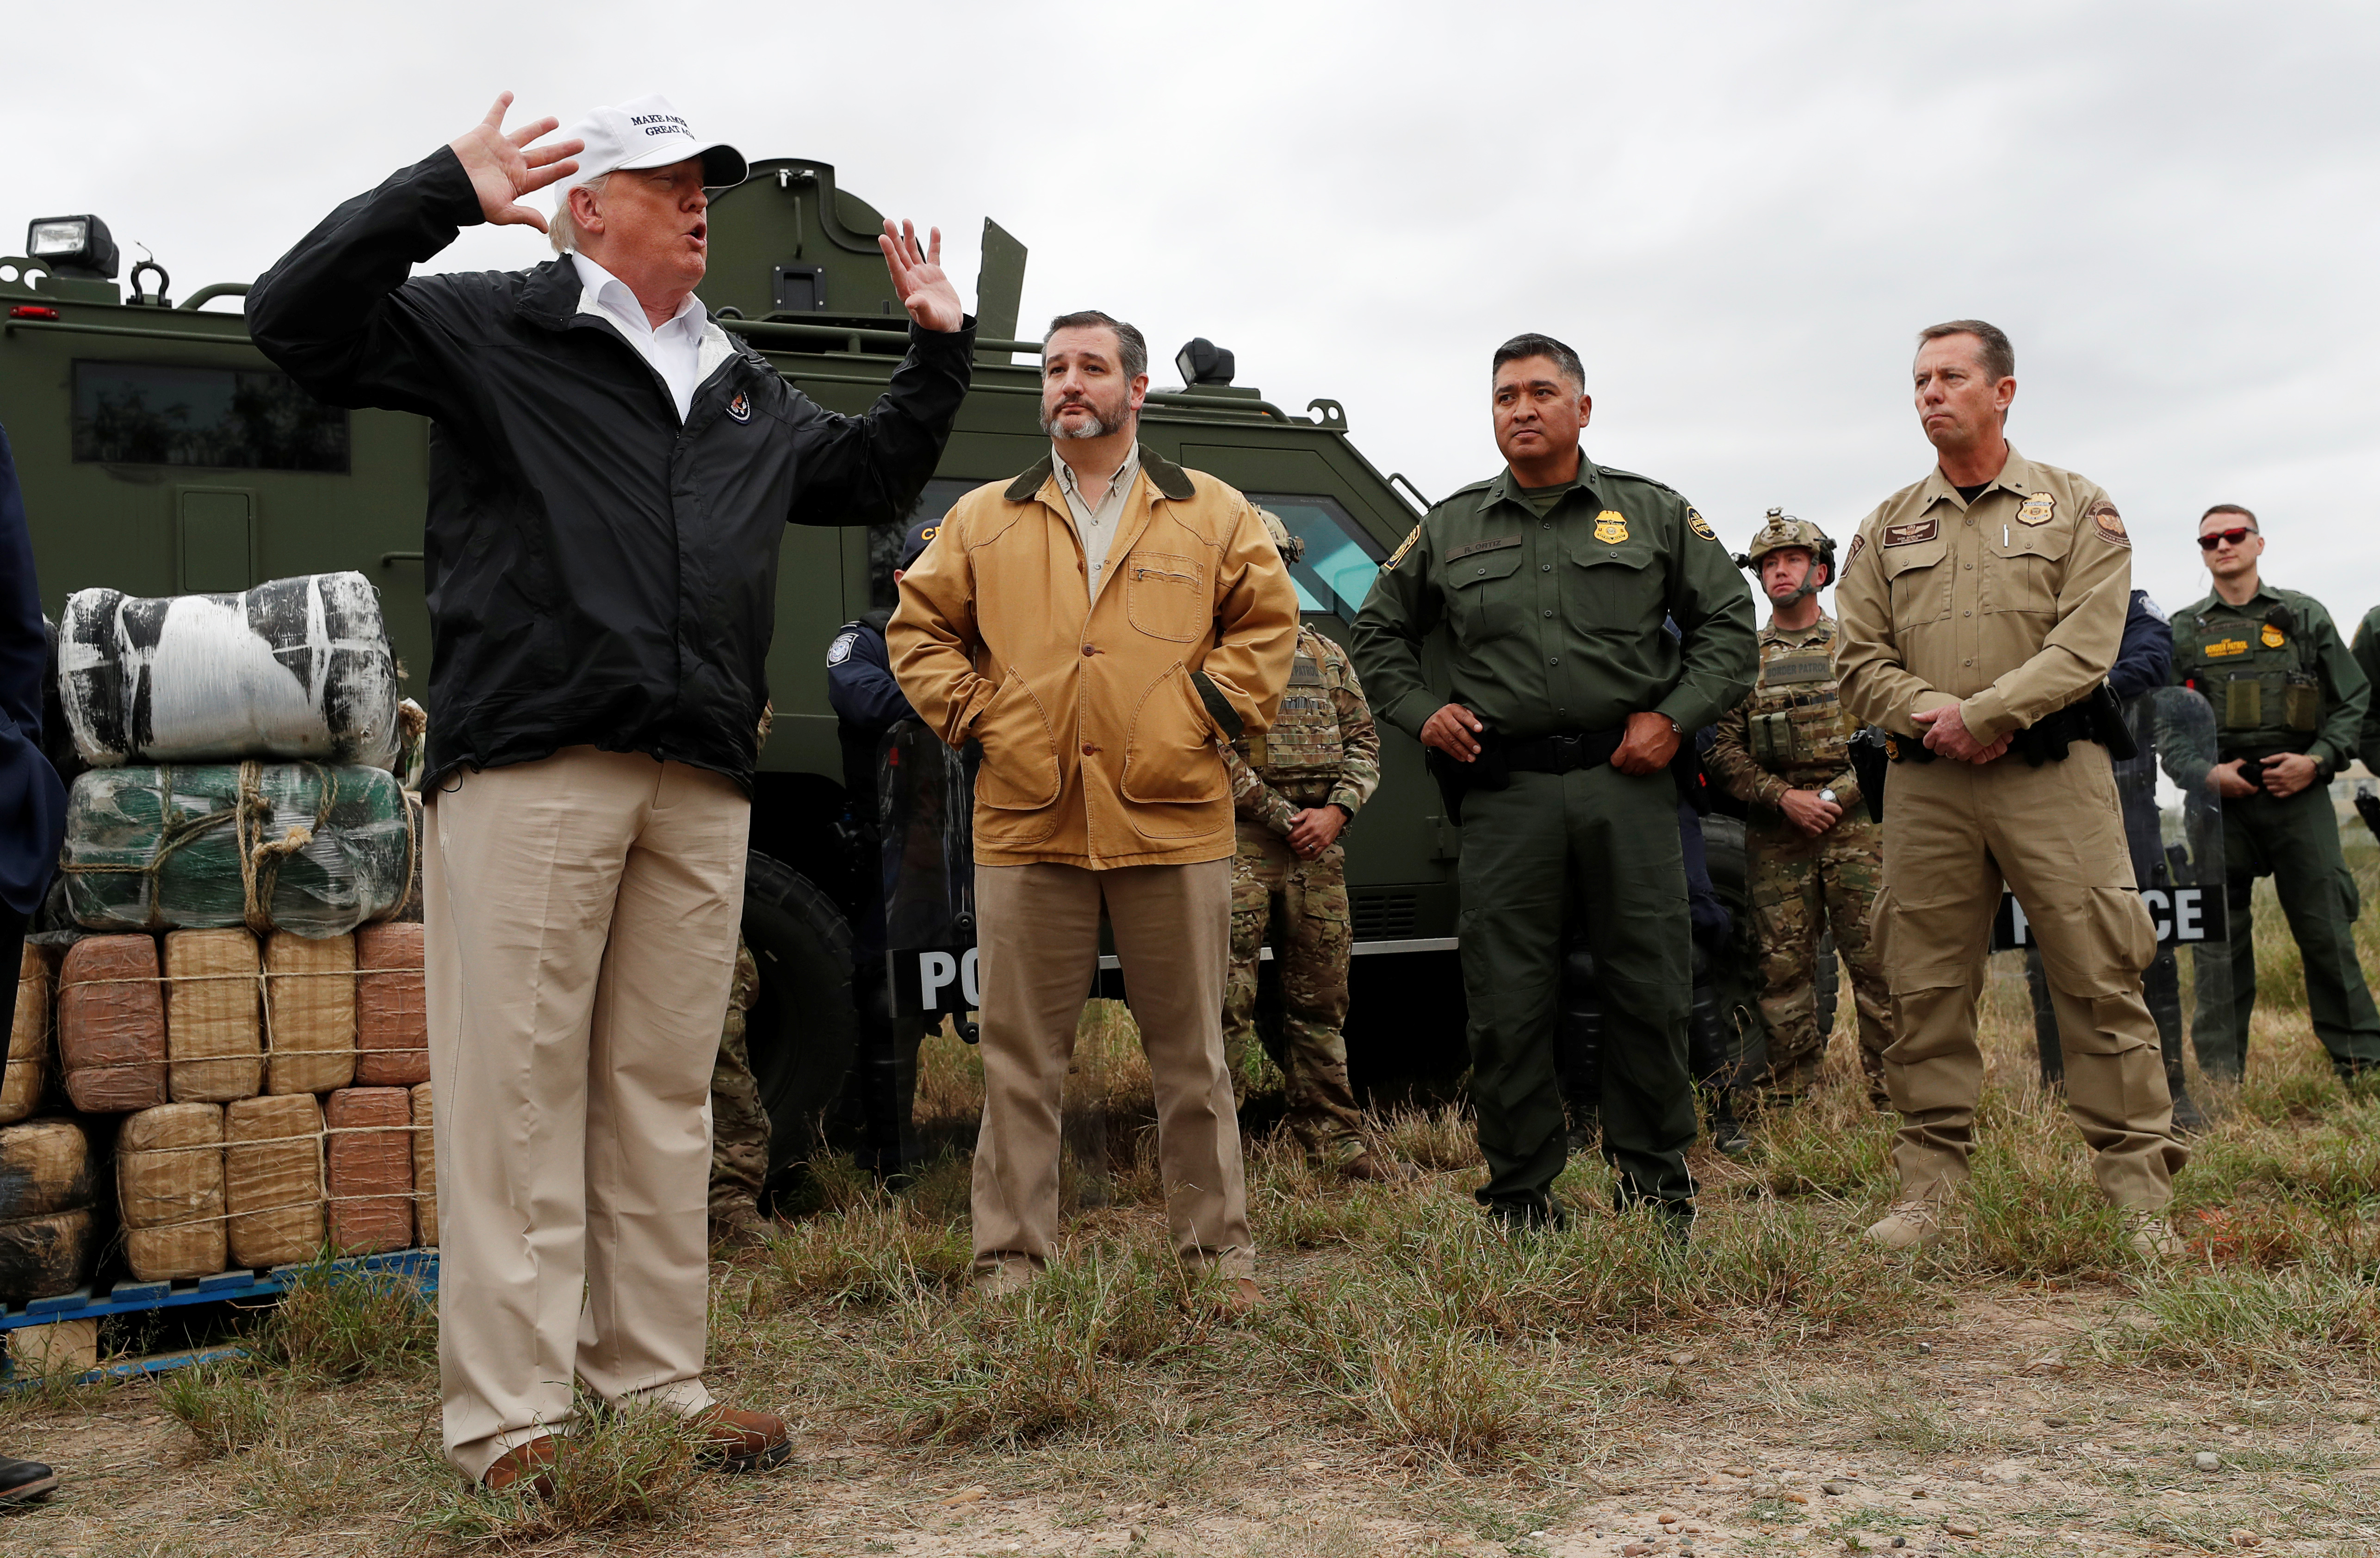 President Donald Trump speaks to reporters as he visits the banks of the Rio Grande River with Senator Ted Cruz and U.S. Customs and Border Patrol officers and agents during the president's visit to the U.S. - Mexico border in Mission, Texas, U.S., January 10, 2019. REUTERS/Leah Millis